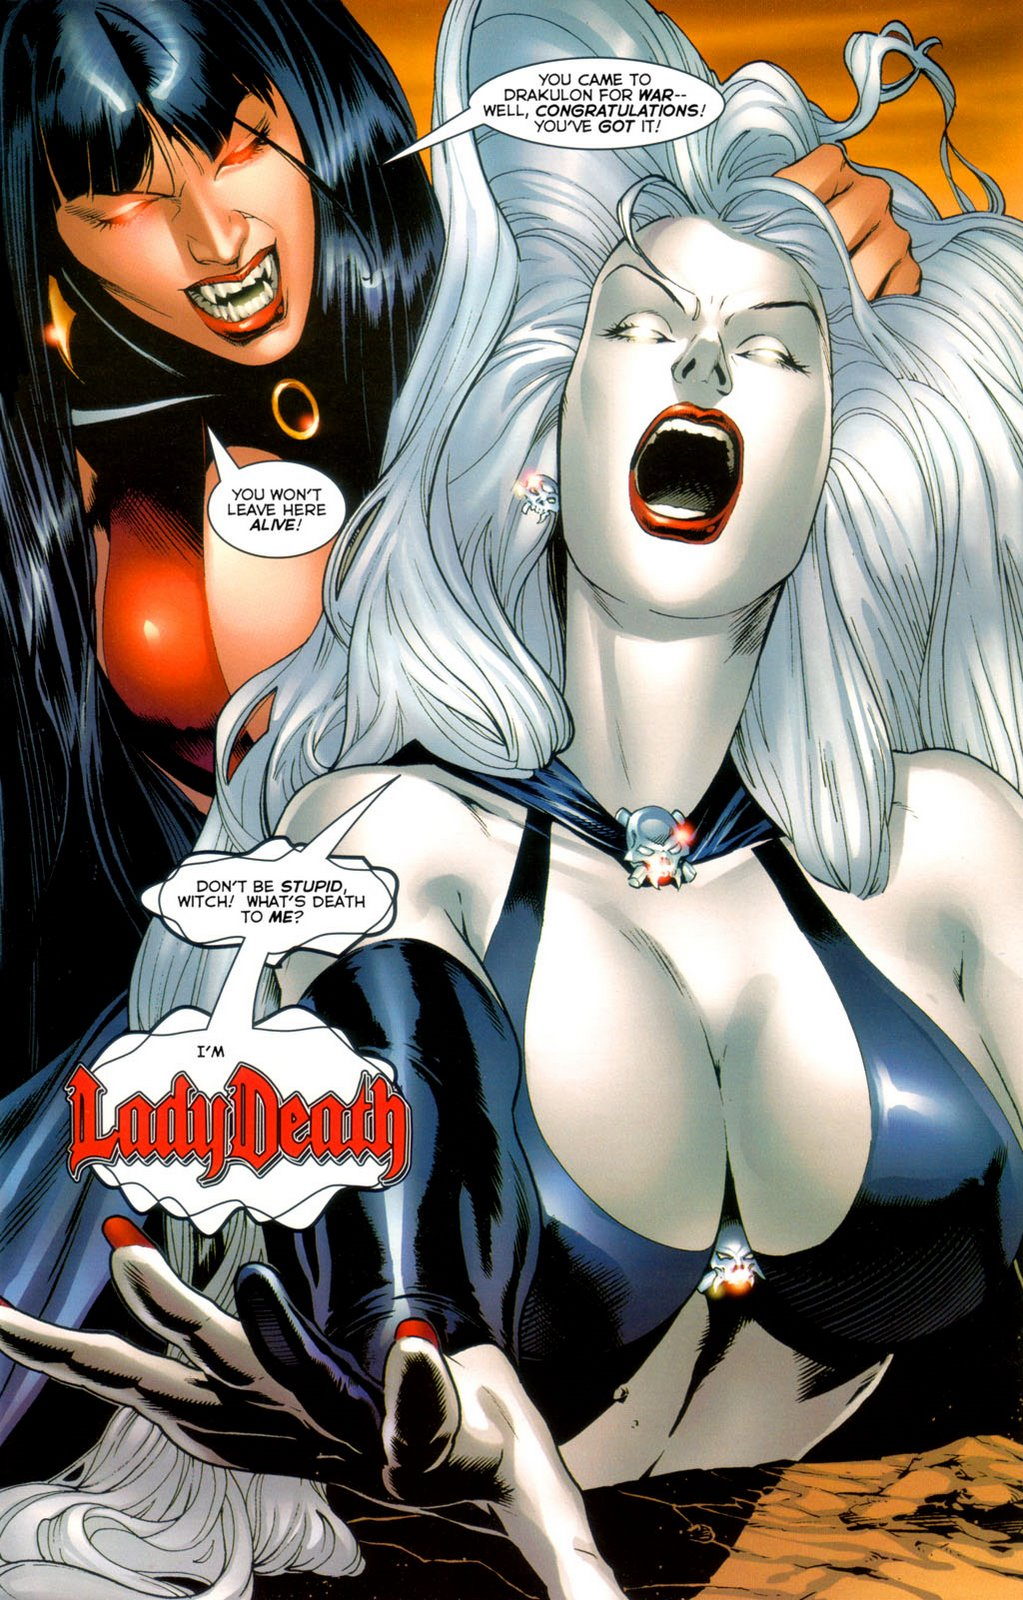 Vampirella naked on lady death cartoon pic